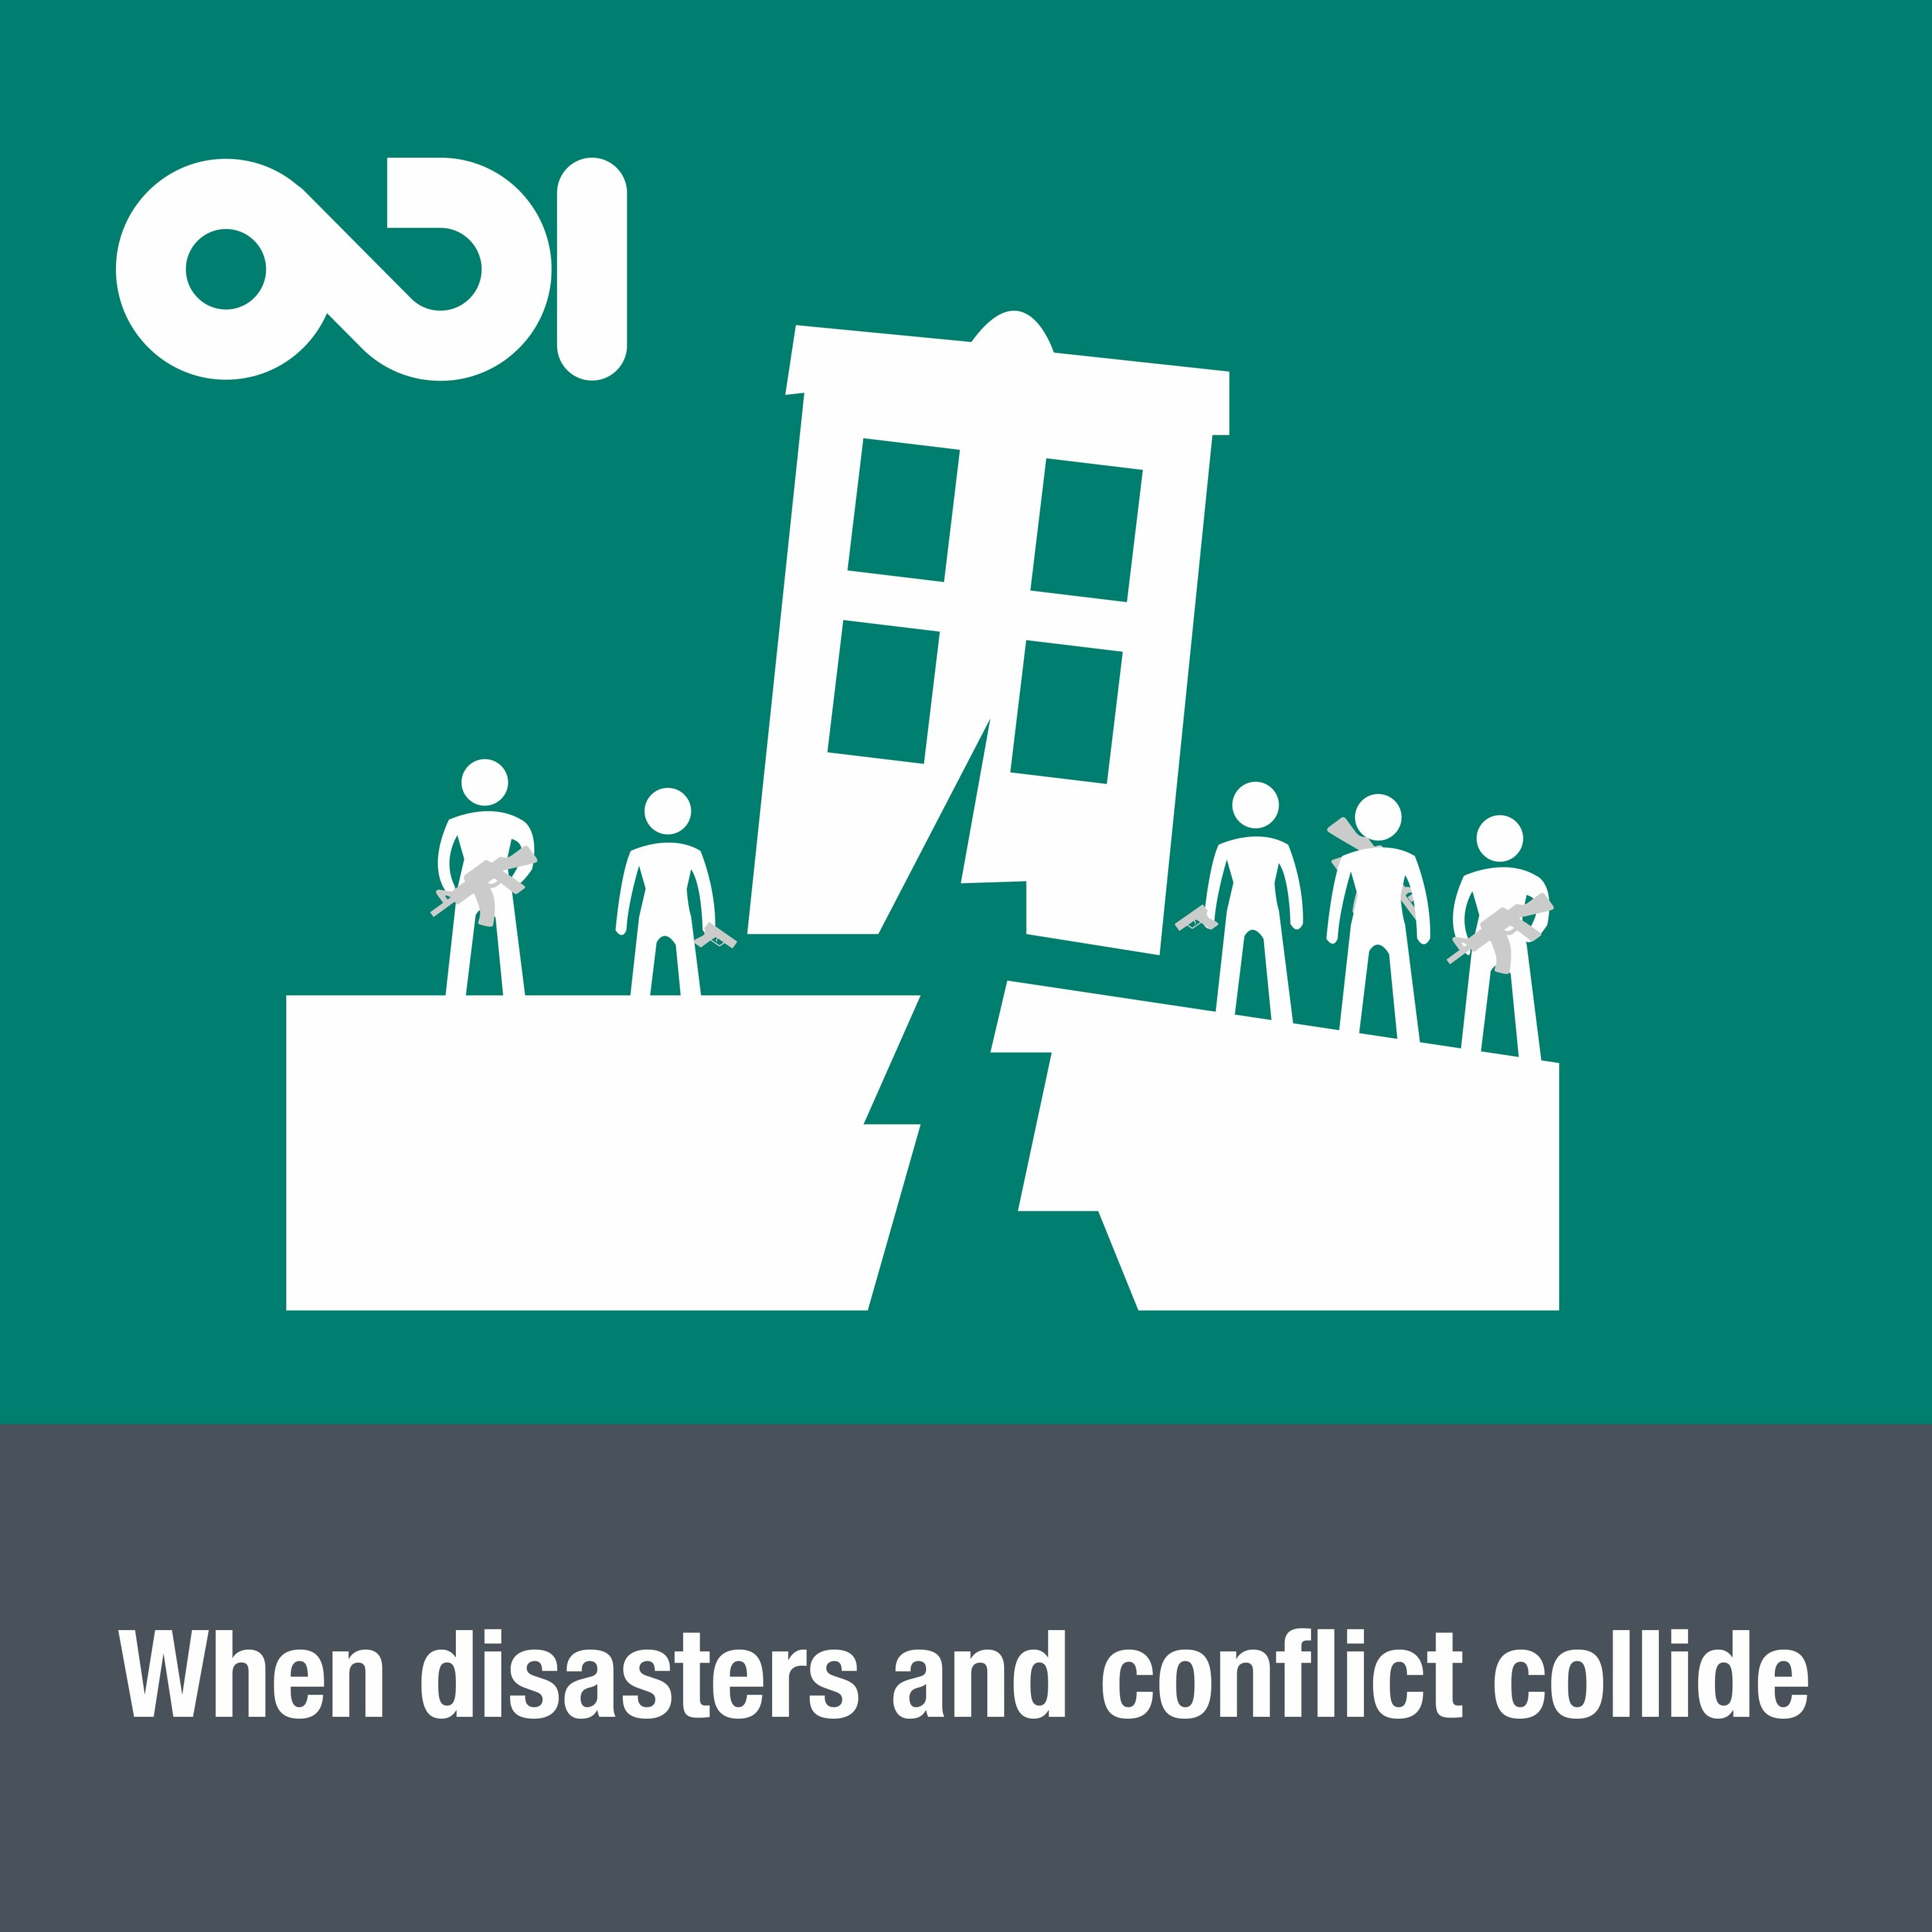 Episode 2: The politics of disasters